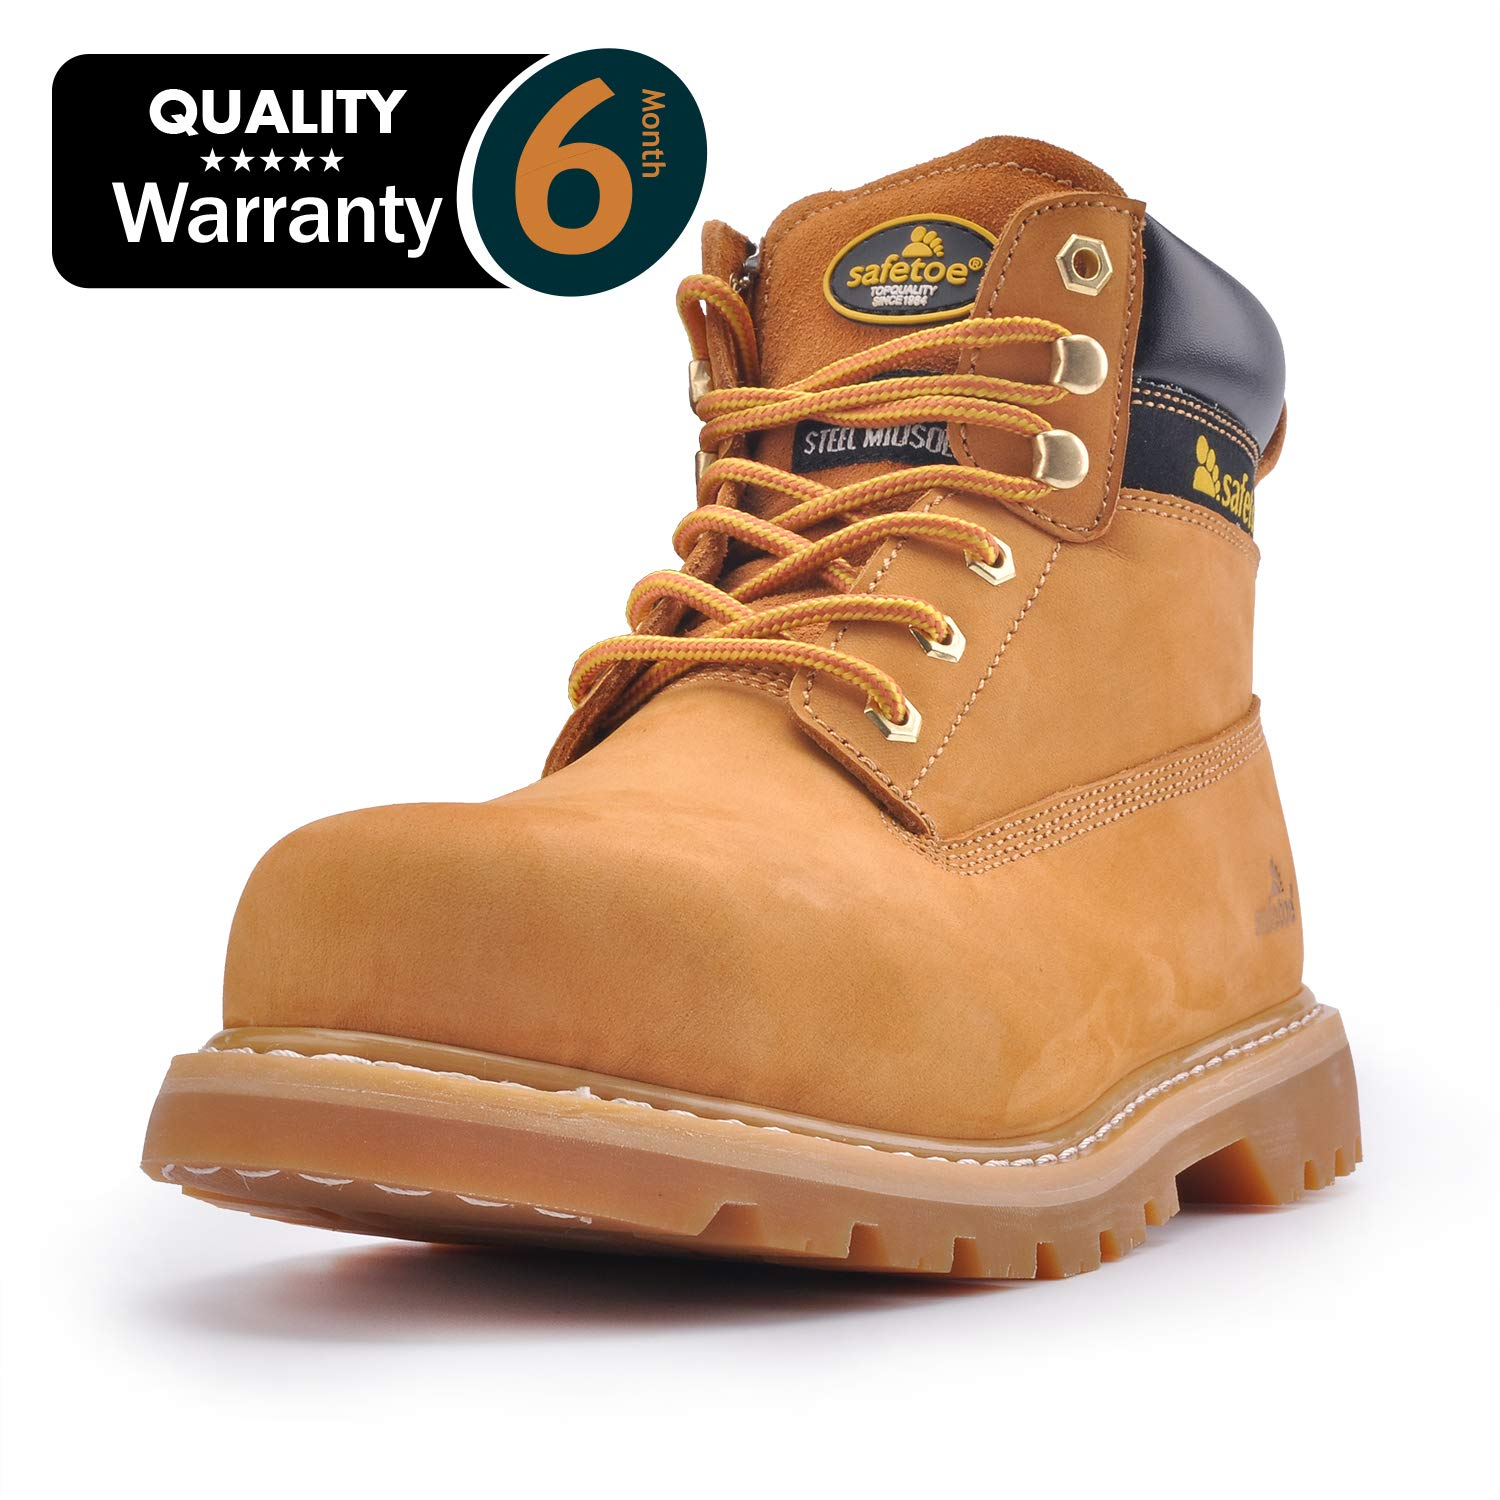 SAFETOE Mens Safety Steel Toe Work Boots Shoes M8173 Women Wide Fitting  Goodyear Steel Toe Capped Boots Trainers Size  Amazon.ca  Shoes   Handbags d90338632e